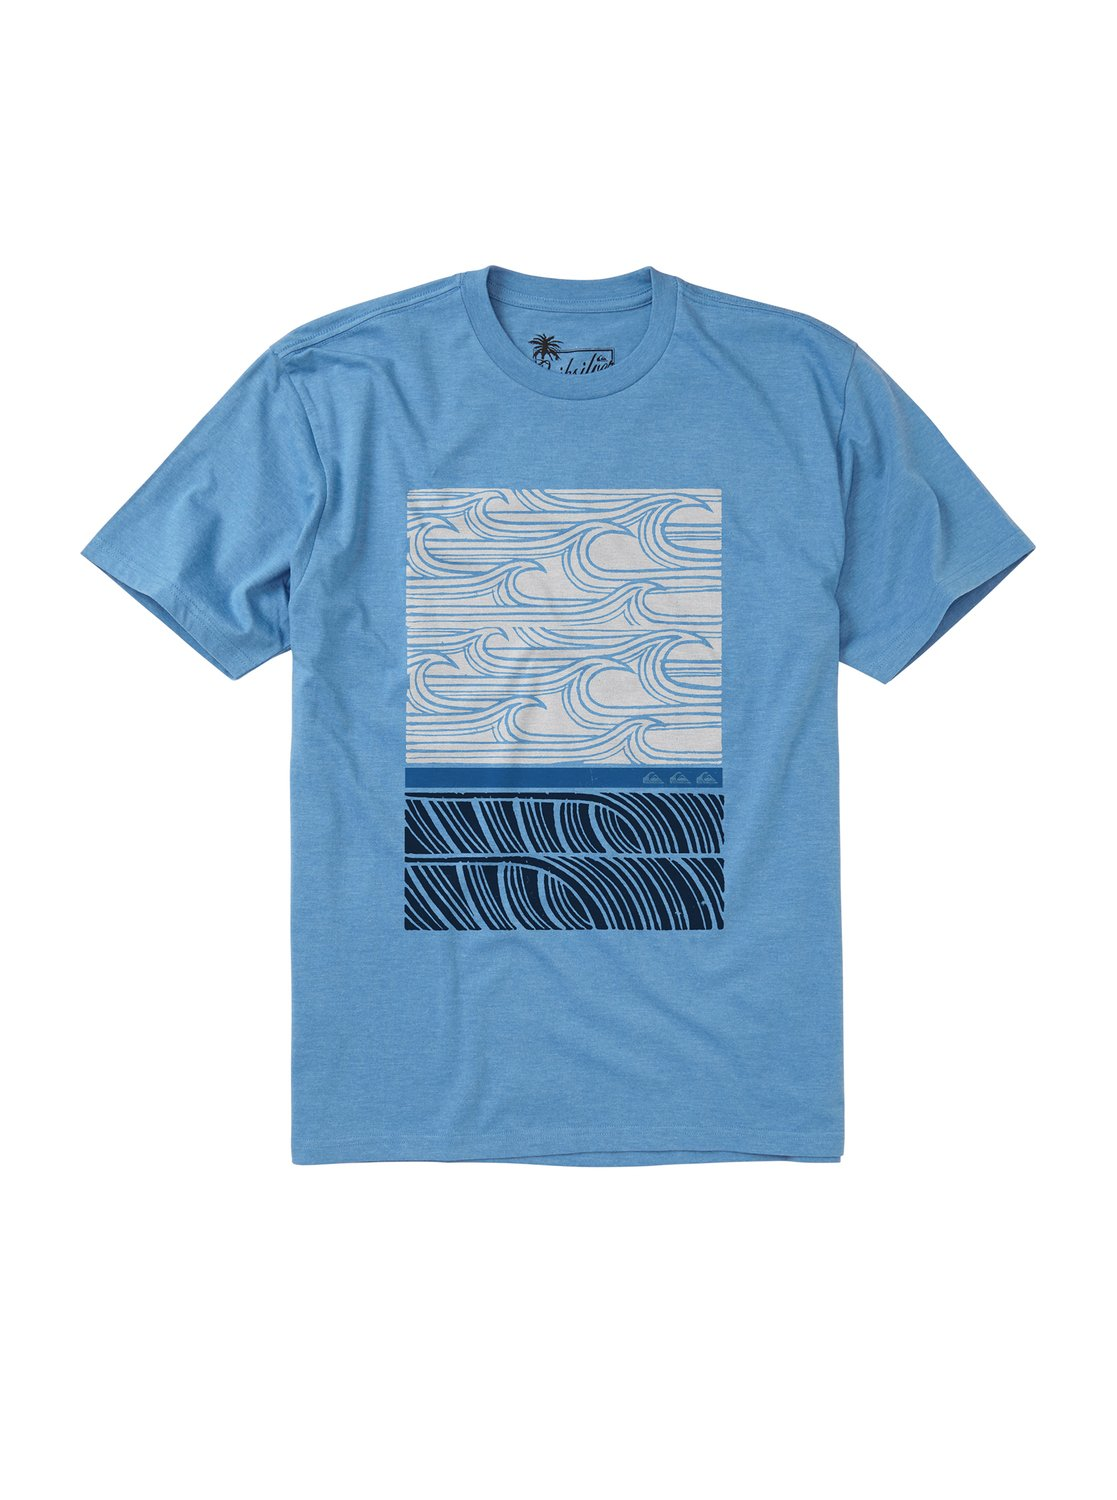 outer banks clothing